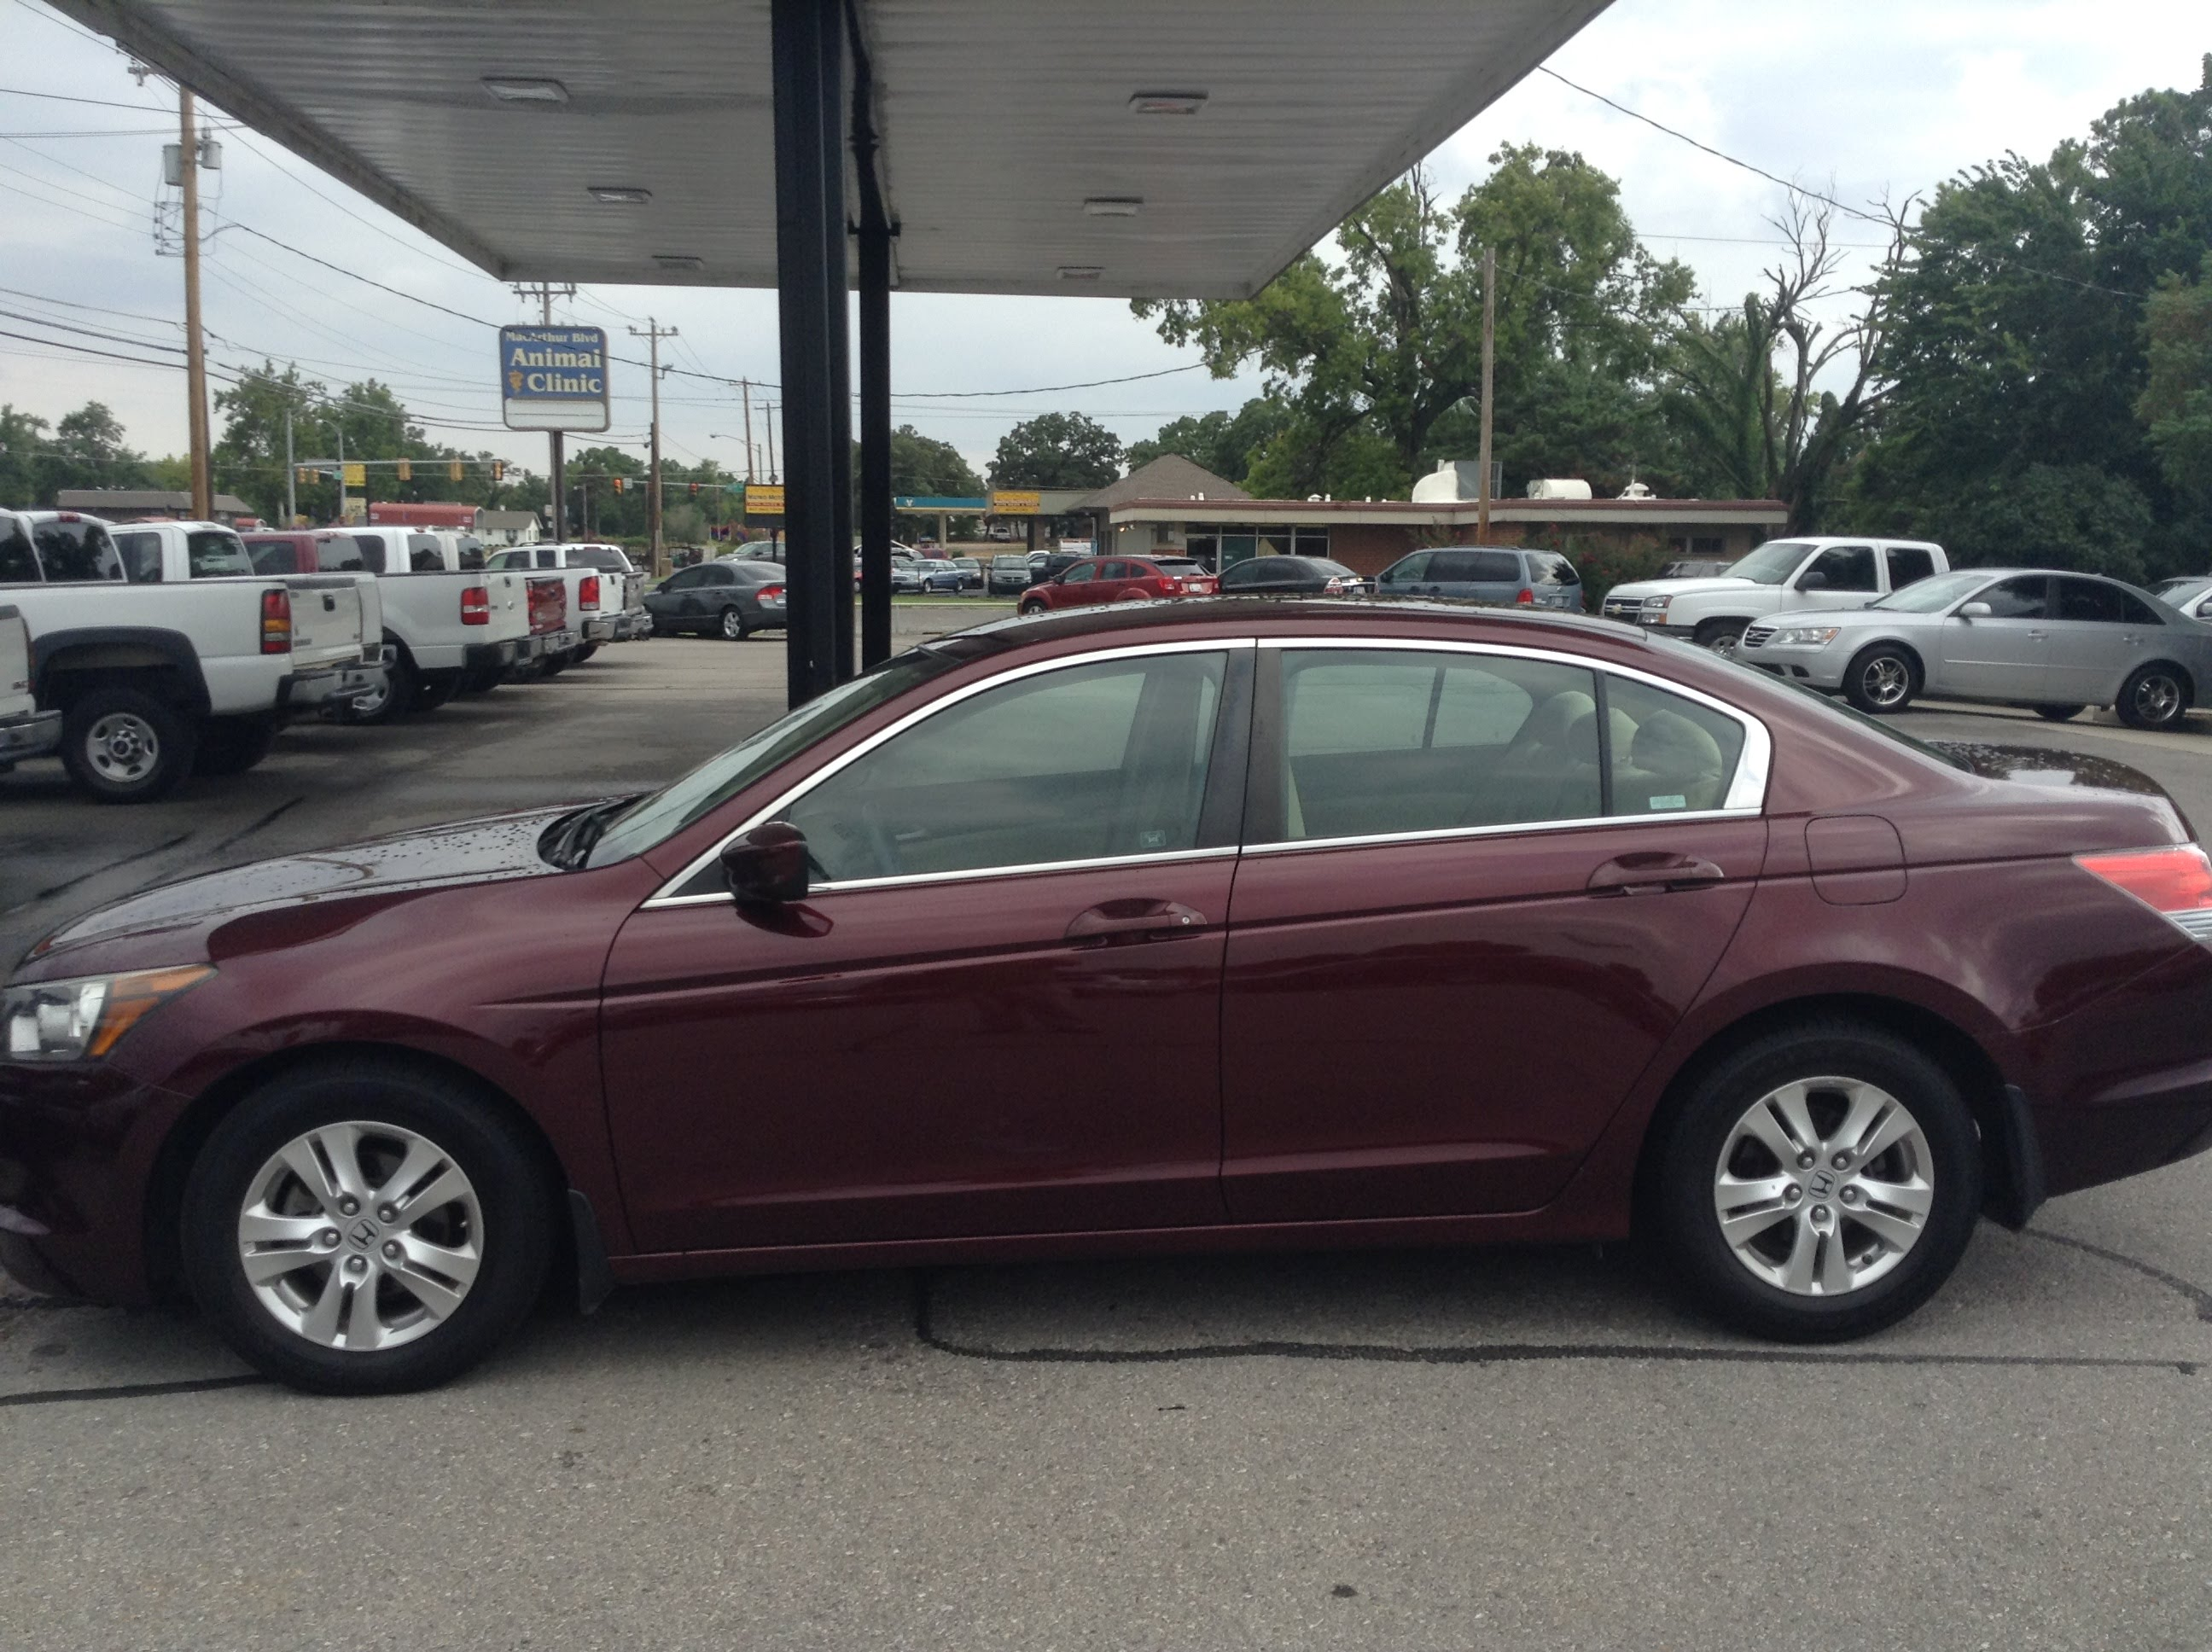 Cars for Sale Near Me Buy Here Pay Here Luxury 2009 Honda Accord for Sale Near Me Here Pay Here Low 9 9 Apr